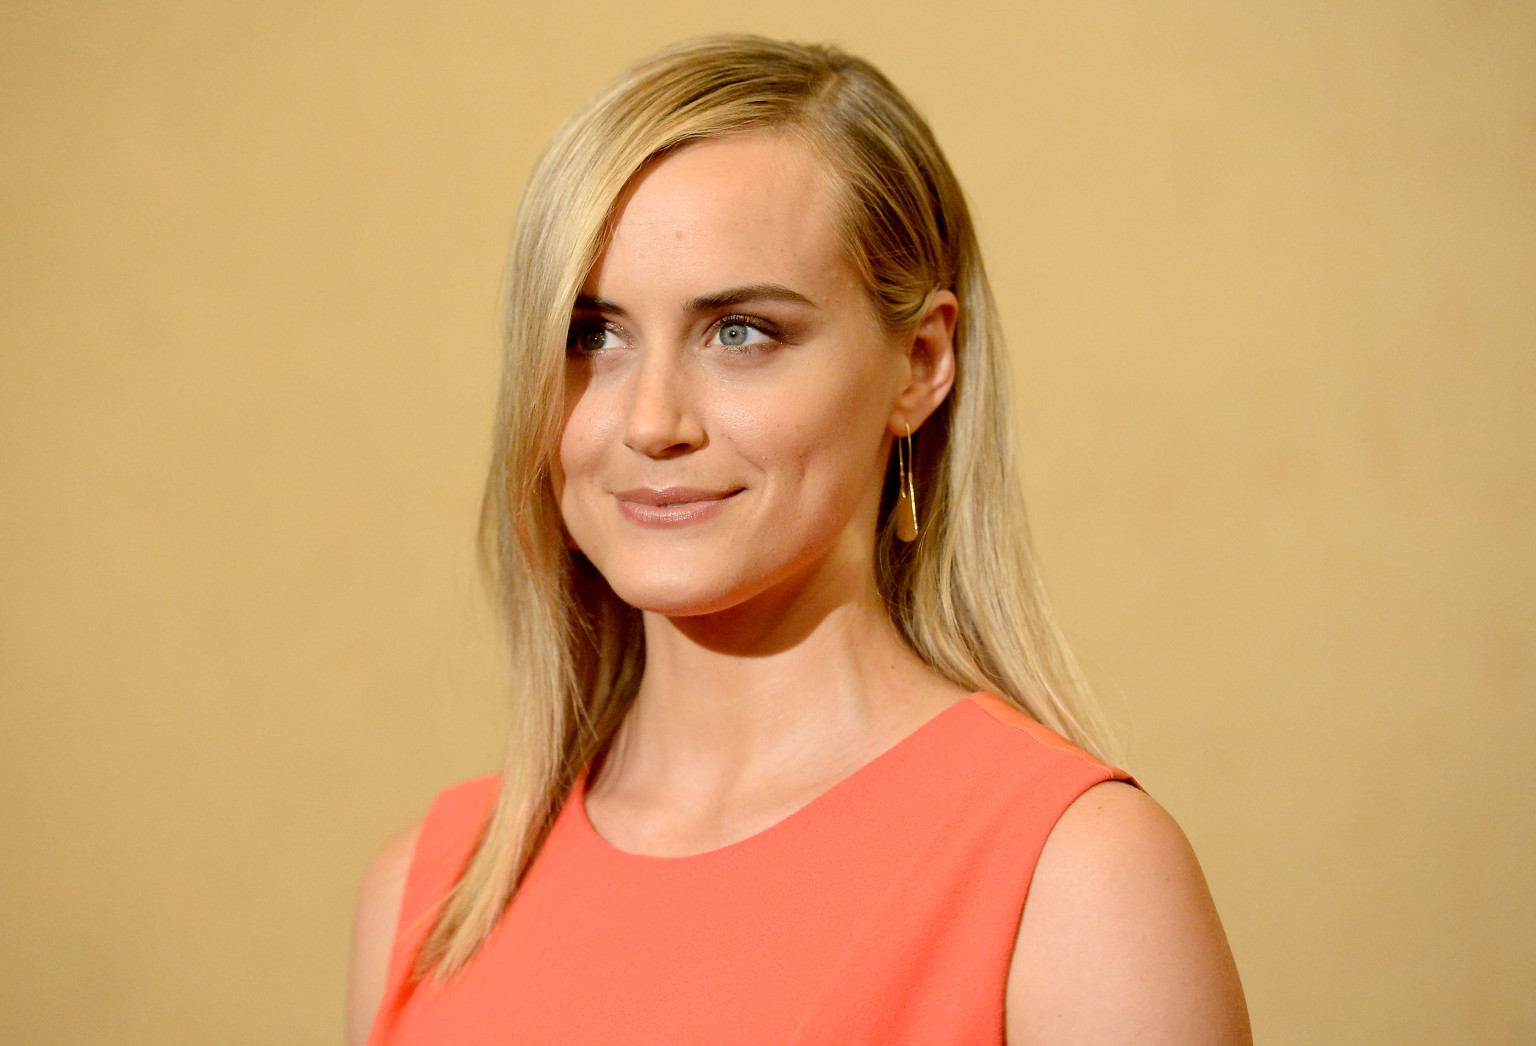 taylor schilling orange is the new blacktaylor schilling katy perry, taylor schilling vk, taylor schilling and, taylor schilling orange is the new black, taylor schilling and lauren tabach, taylor schilling biography, taylor schilling part iv, taylor schilling brasil, taylor schilling makeup, taylor schilling fan, taylor schilling eyes, taylor schilling rd, taylor schilling golden globe 2017, taylor schilling seth meyers, taylor schilling and ltb, taylor schilling dagny taggart, taylor schilling net worth, taylor schilling wiki, taylor schilling bio, taylor schilling twitter